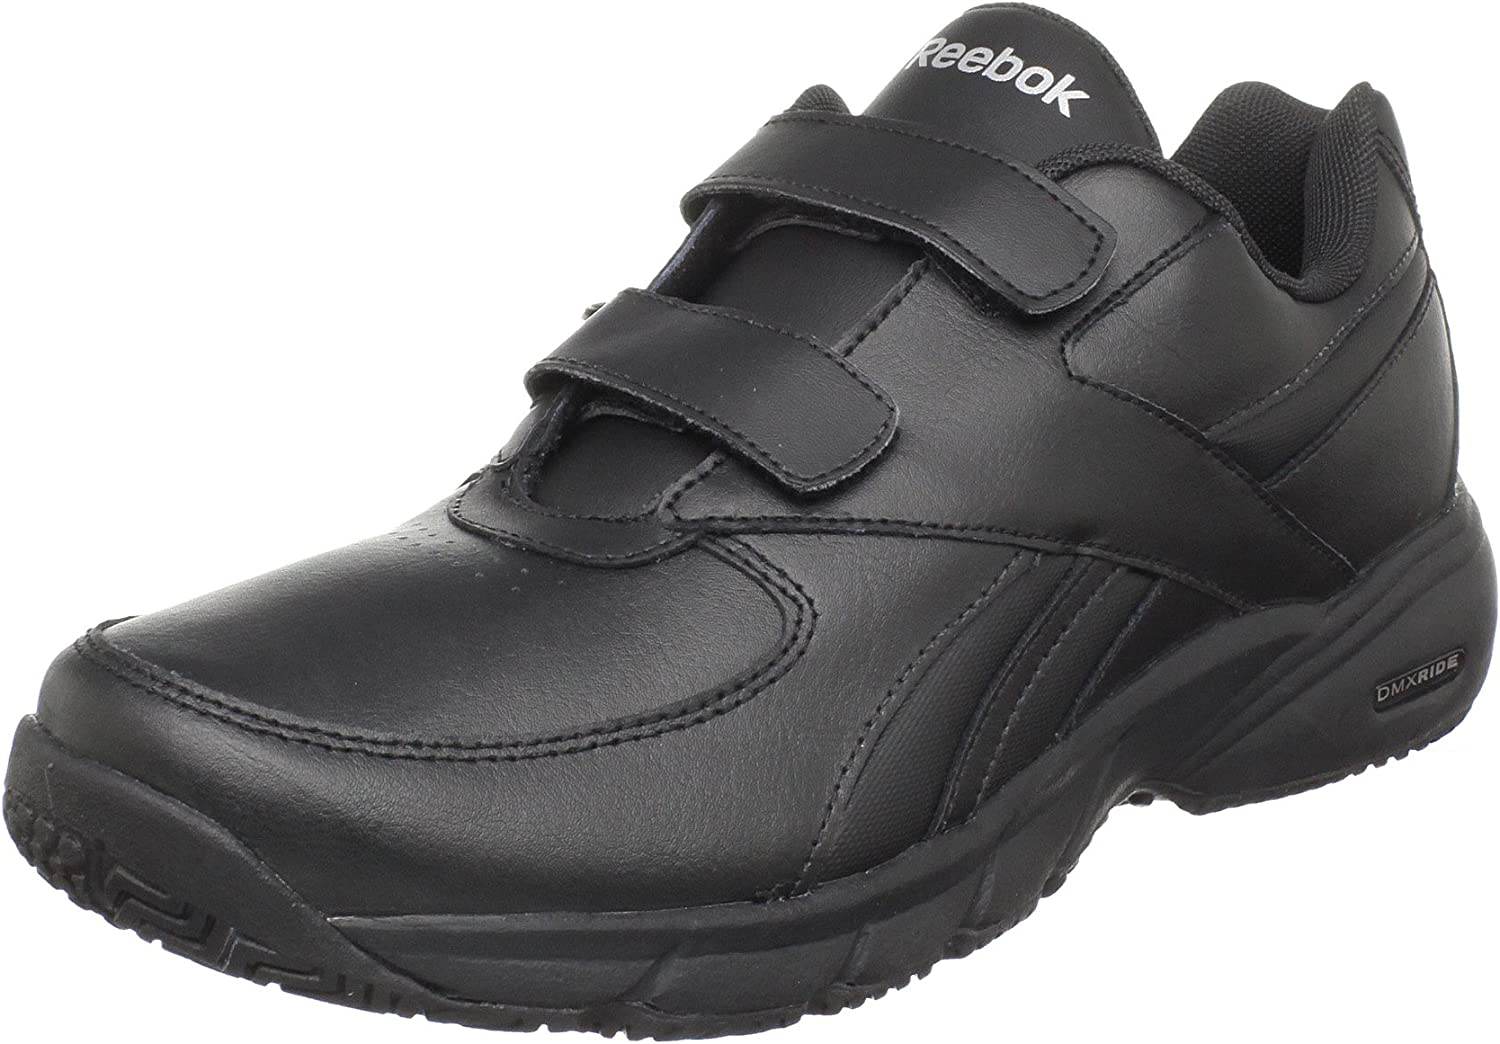 Reebok TIME AND A HALF J16979 Unisex-adult Sports shoes